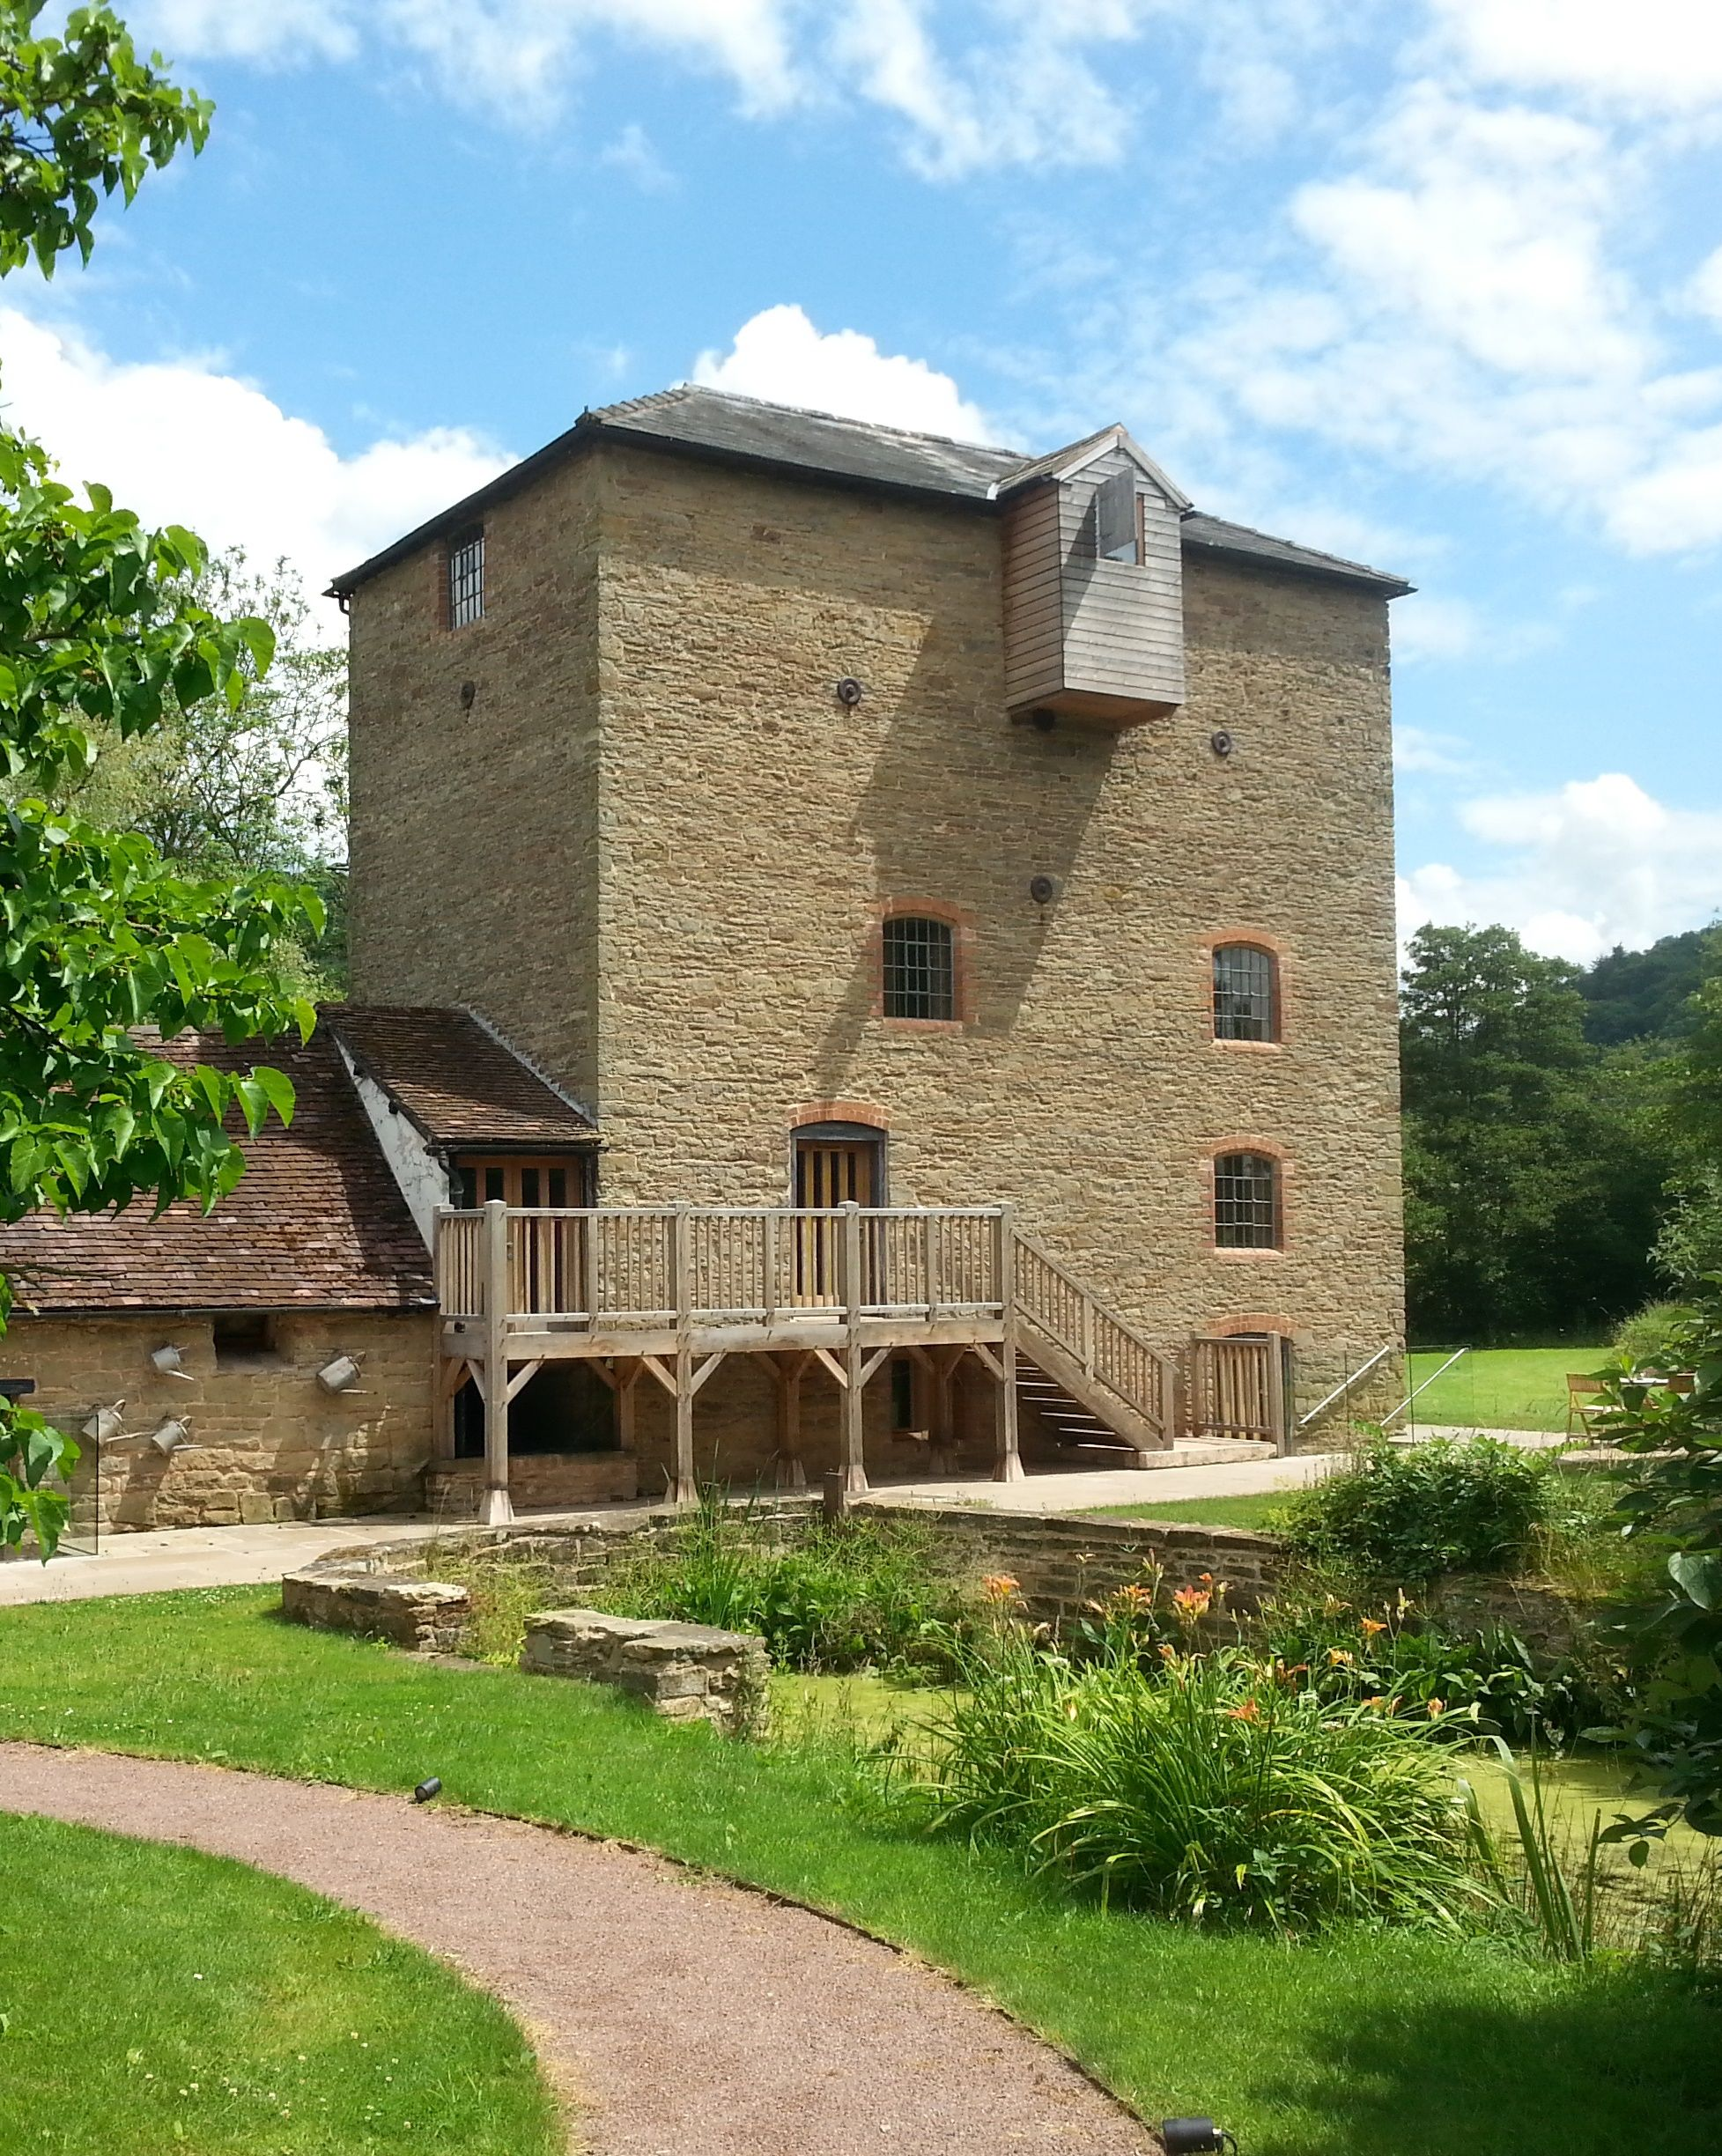 Uplifting and inspiring Ayurvedic retreats now available at The Clover Mill in Worcestershire!